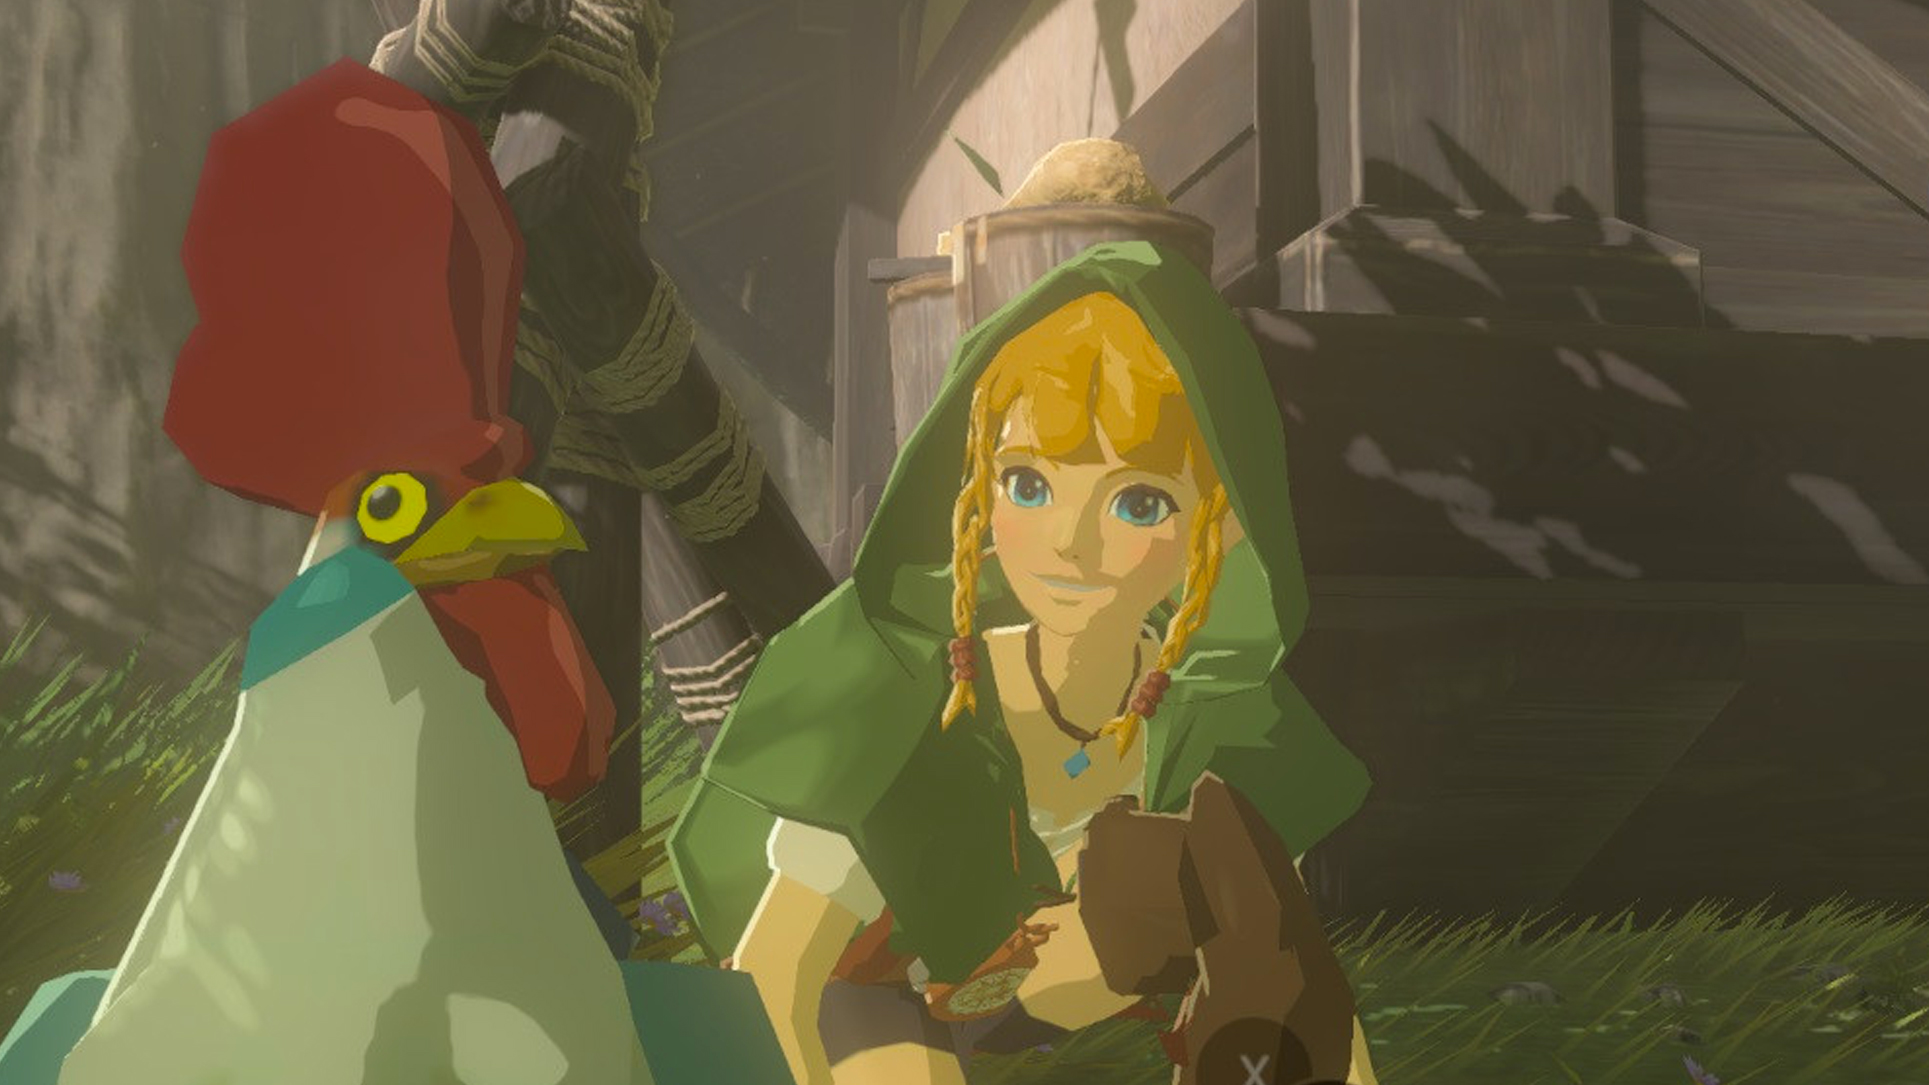 Linkle Mod Makes Breath of the Wild Even Better | Cat with Monocle